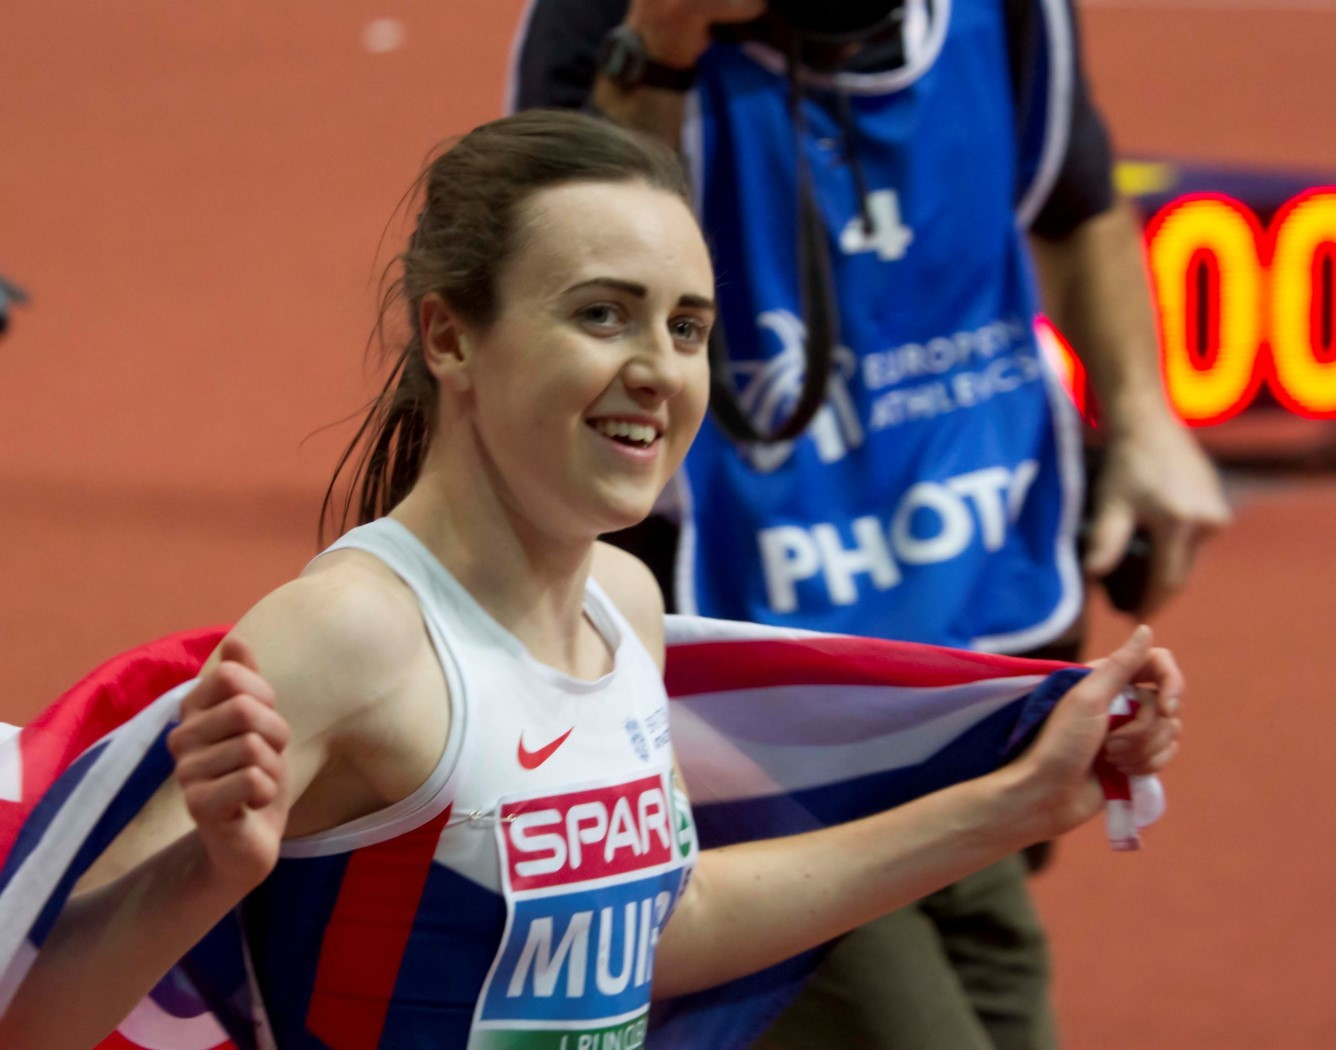 British middle-distance runner Laura Muir refocuses on Olympic goals